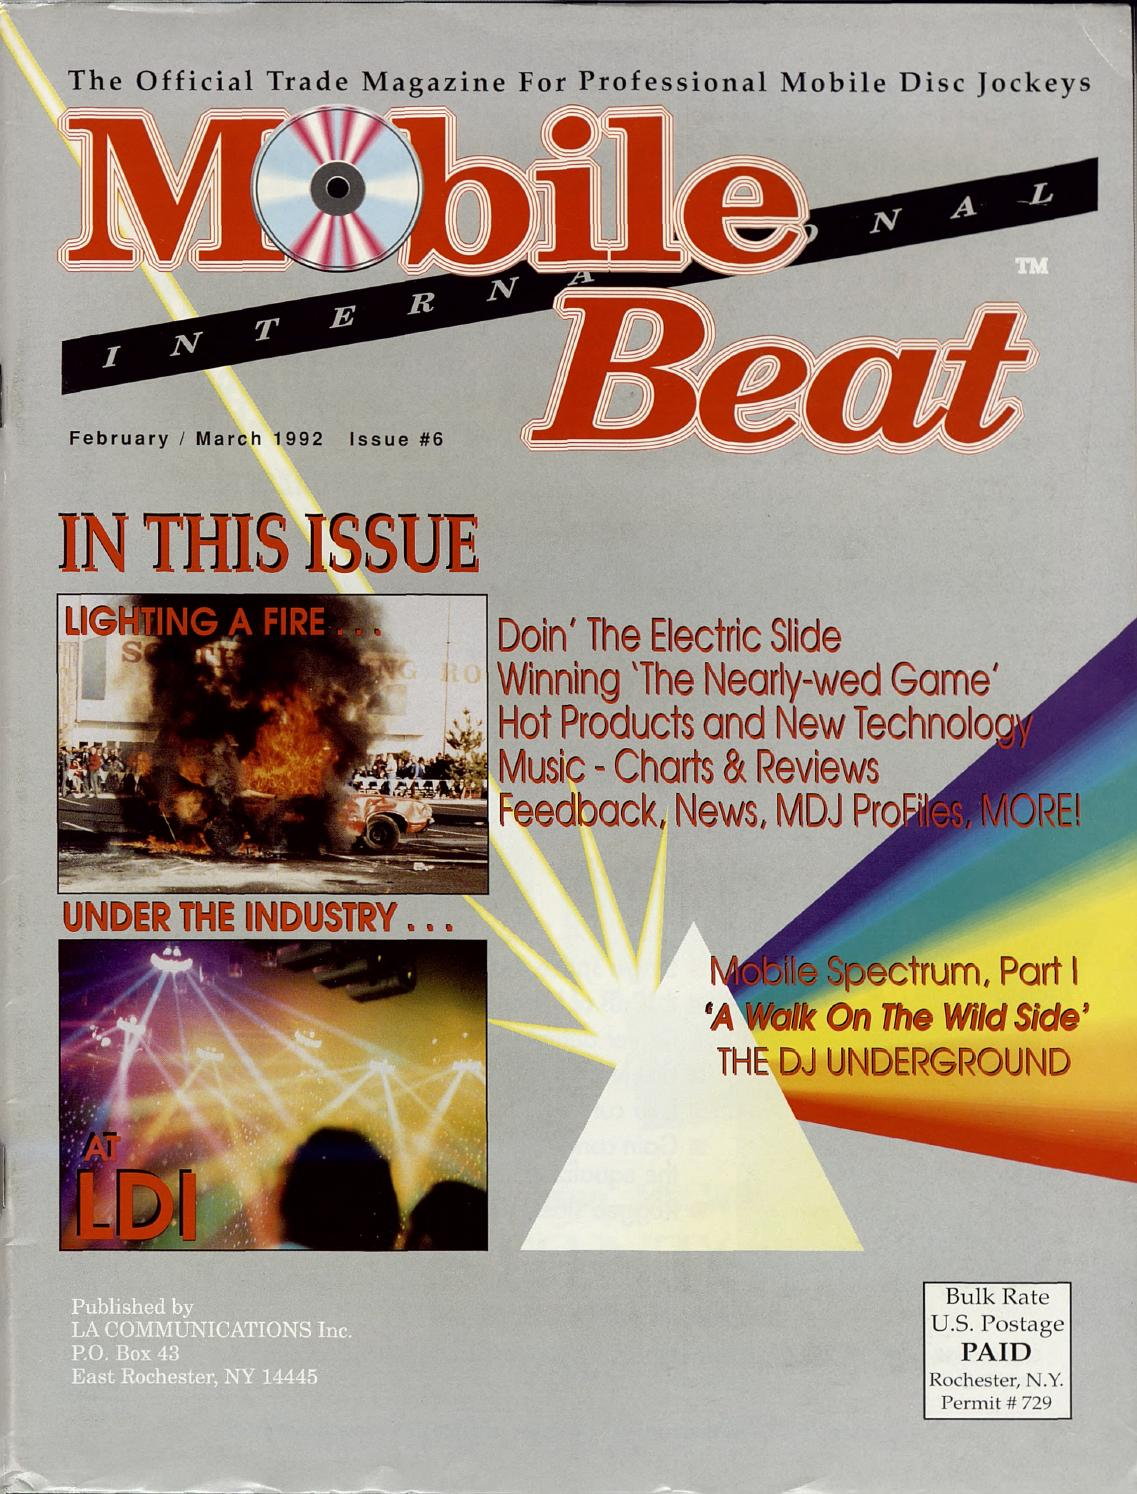 Issue 006 - February/March 1992 - Lighting A Fire Under The